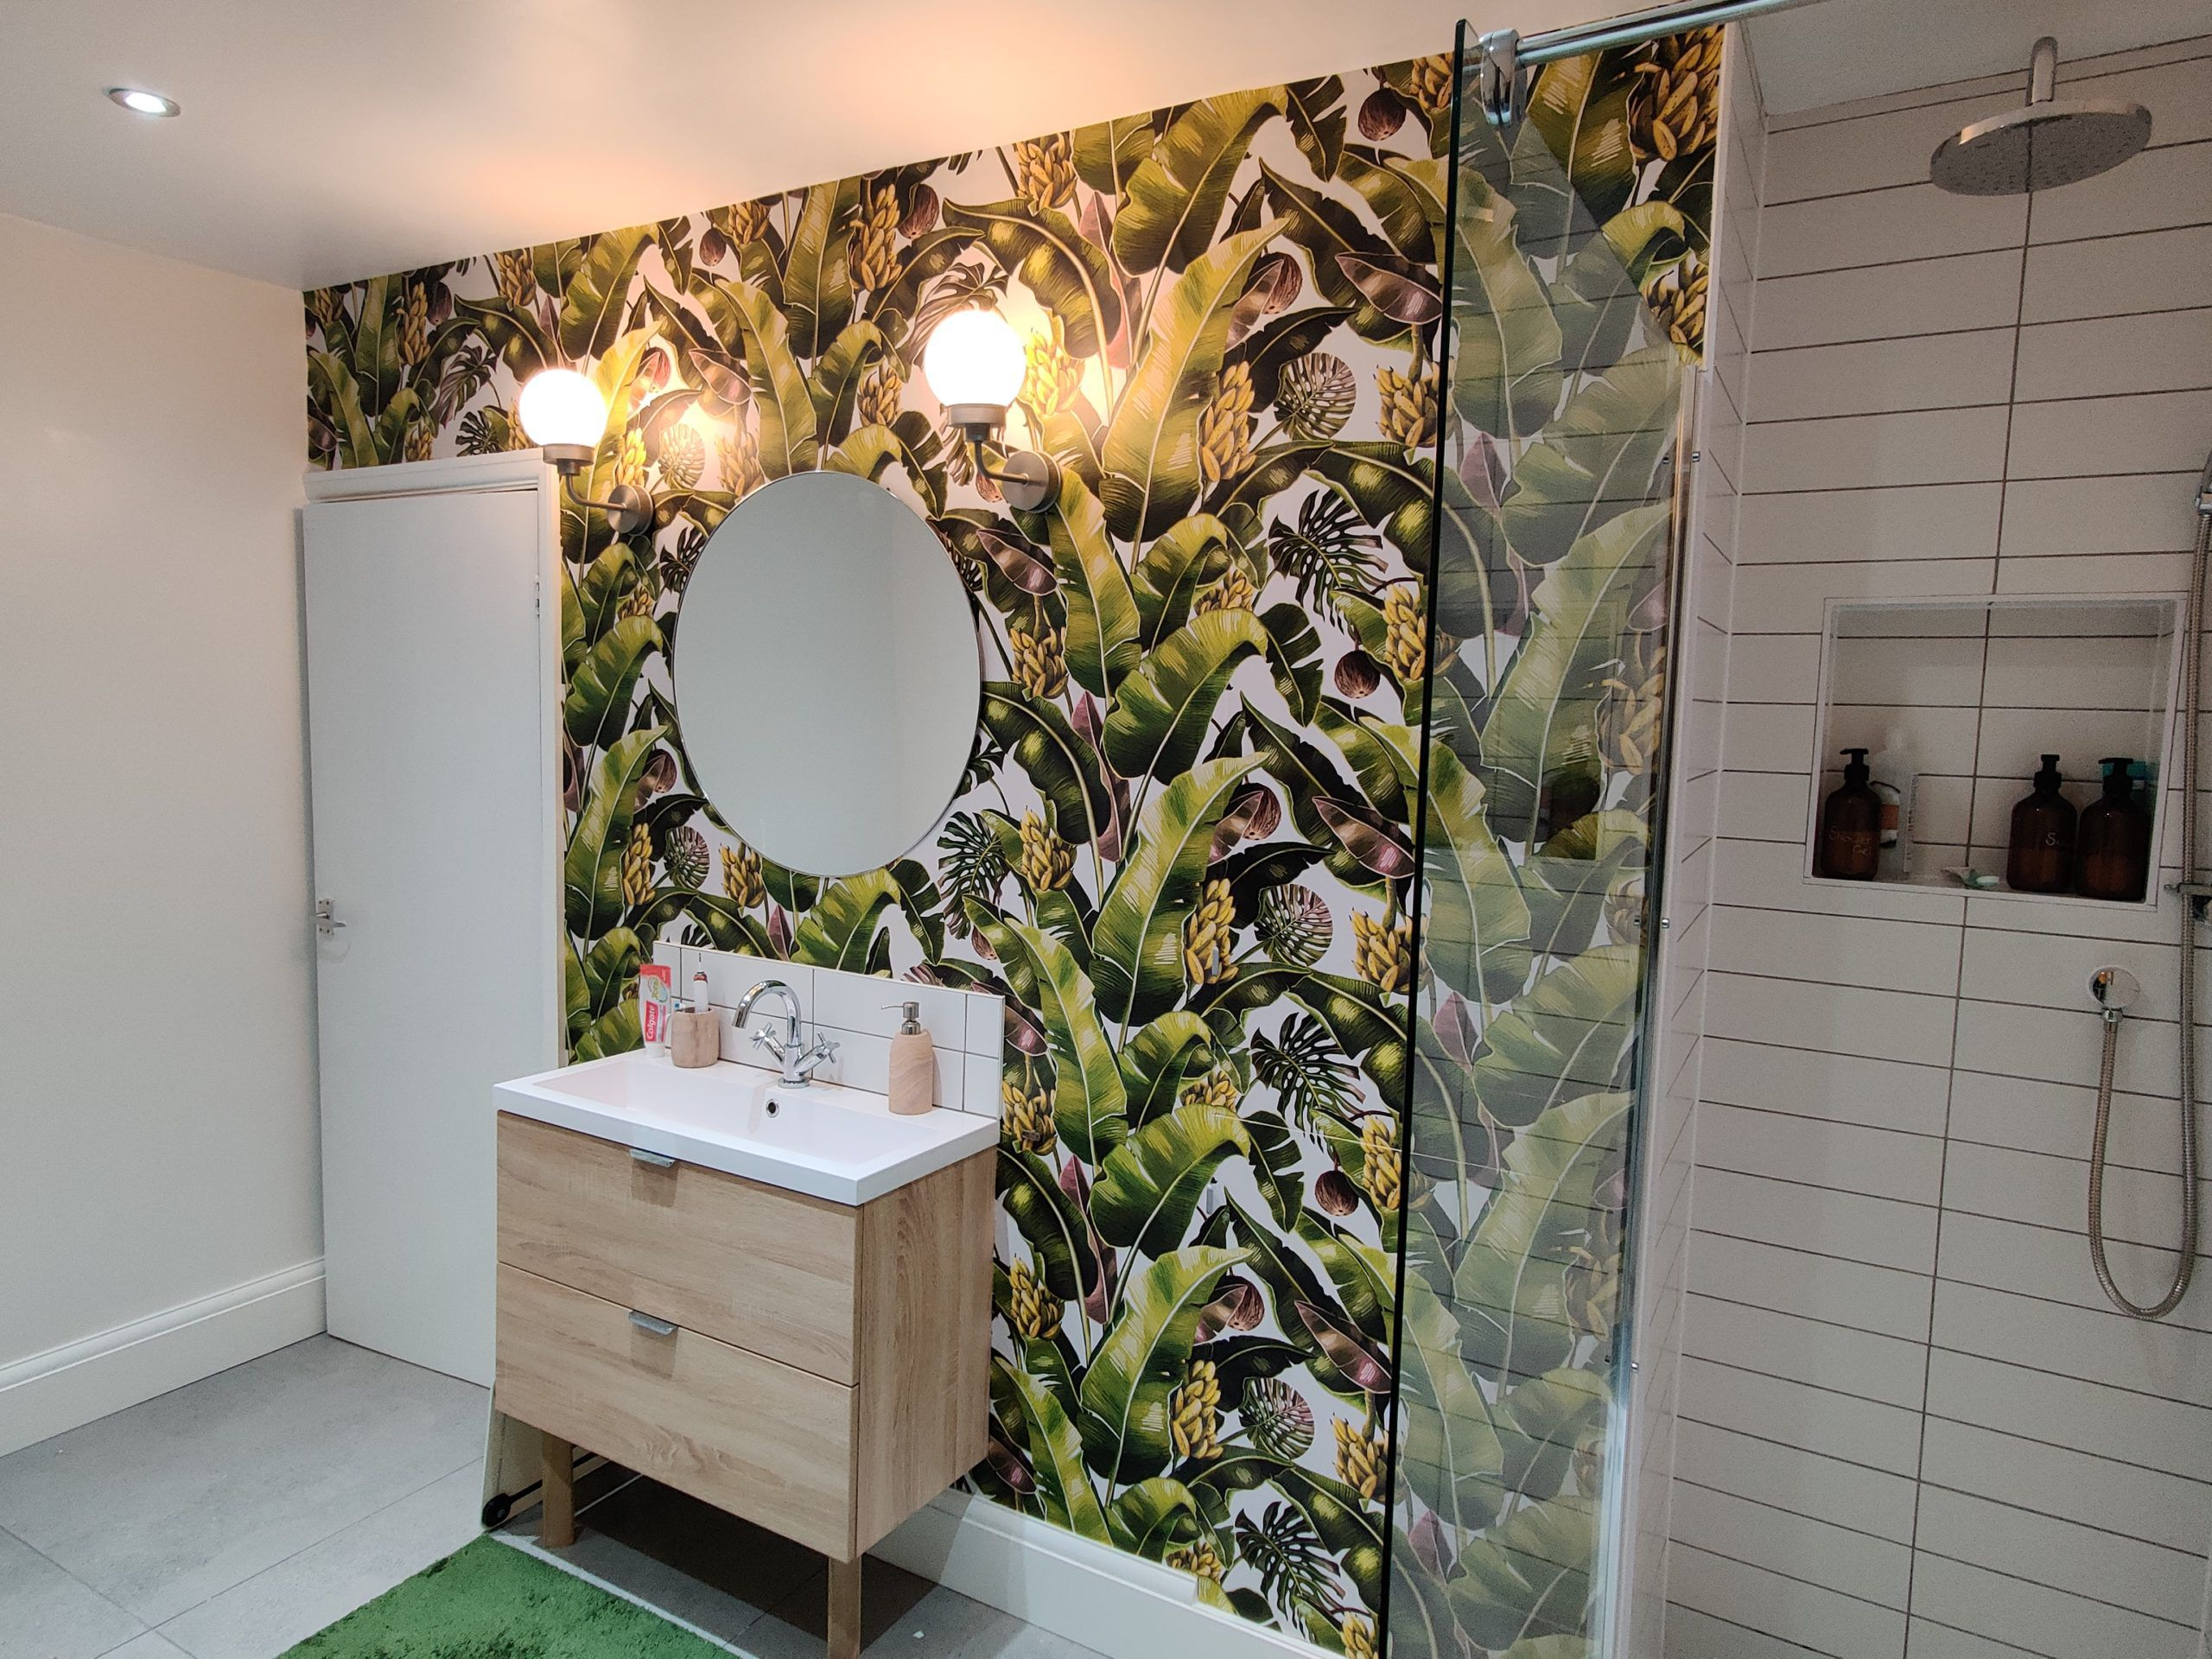 Kingdom Palm Wallpaper • Tropical Wallpaper •Wallpaper In the Bathroom • How To Waterproof Your Wallpaper • Michaela Livingstone-Banks • Andrew Dillon Decorating